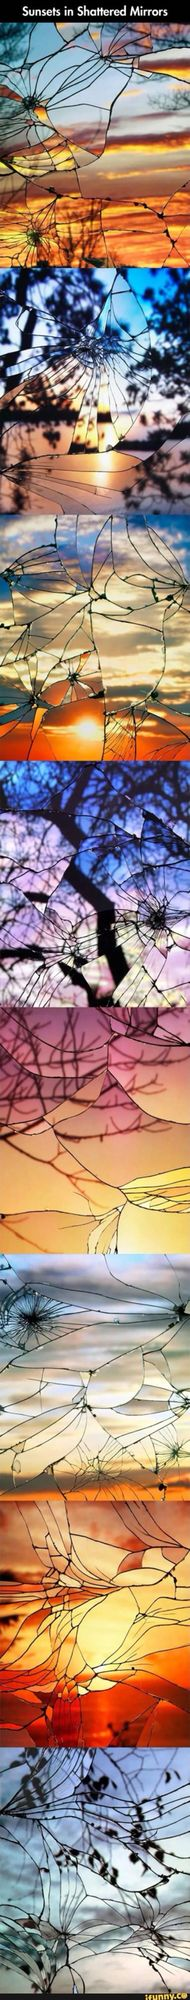 Even the shattered things are beautiful